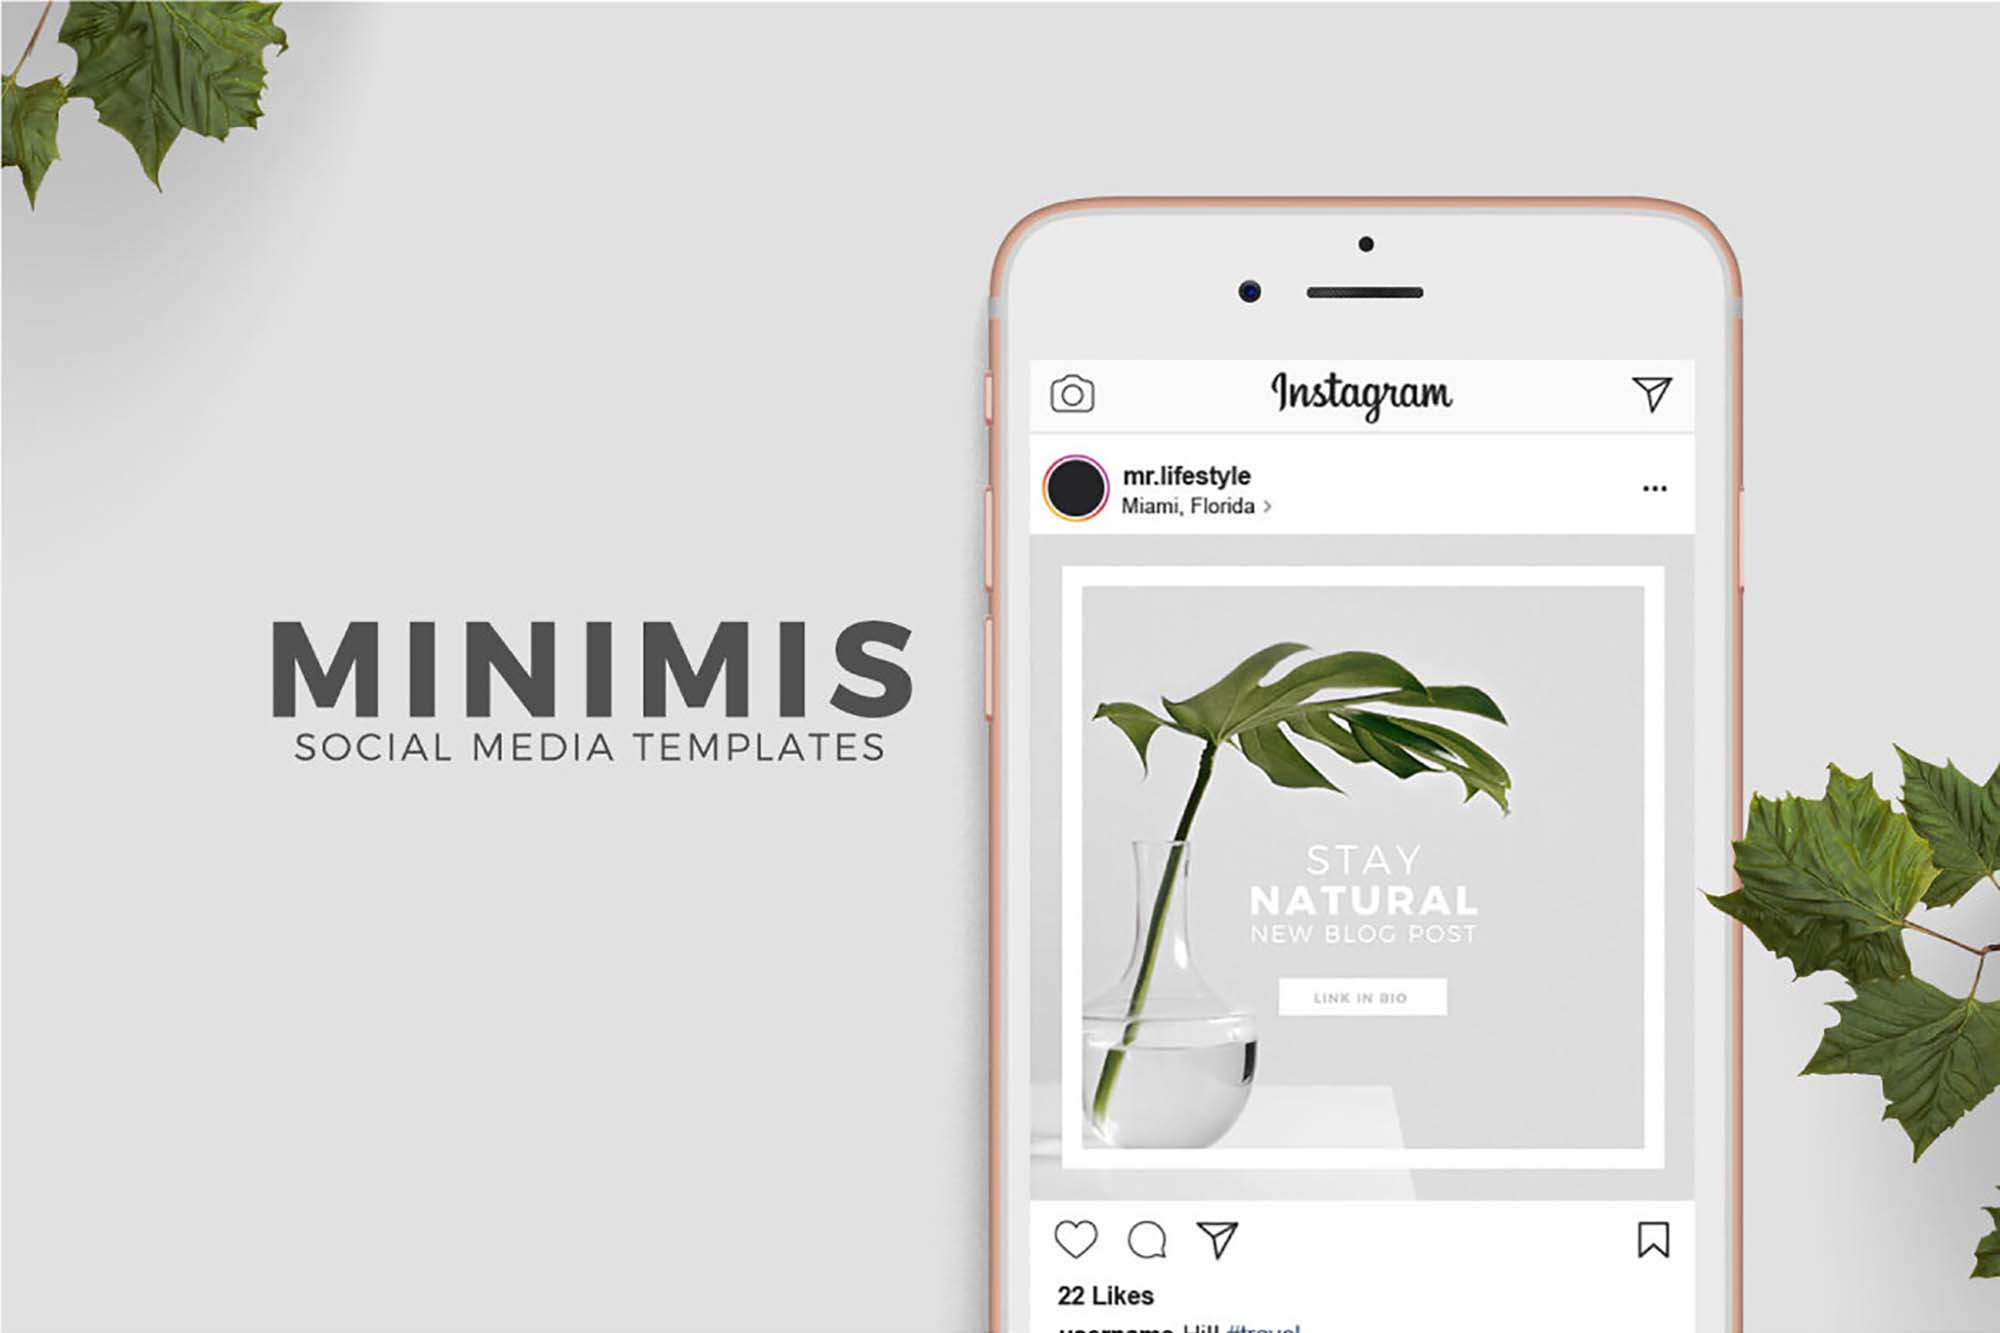 Minimis Instagram Social Media Templates